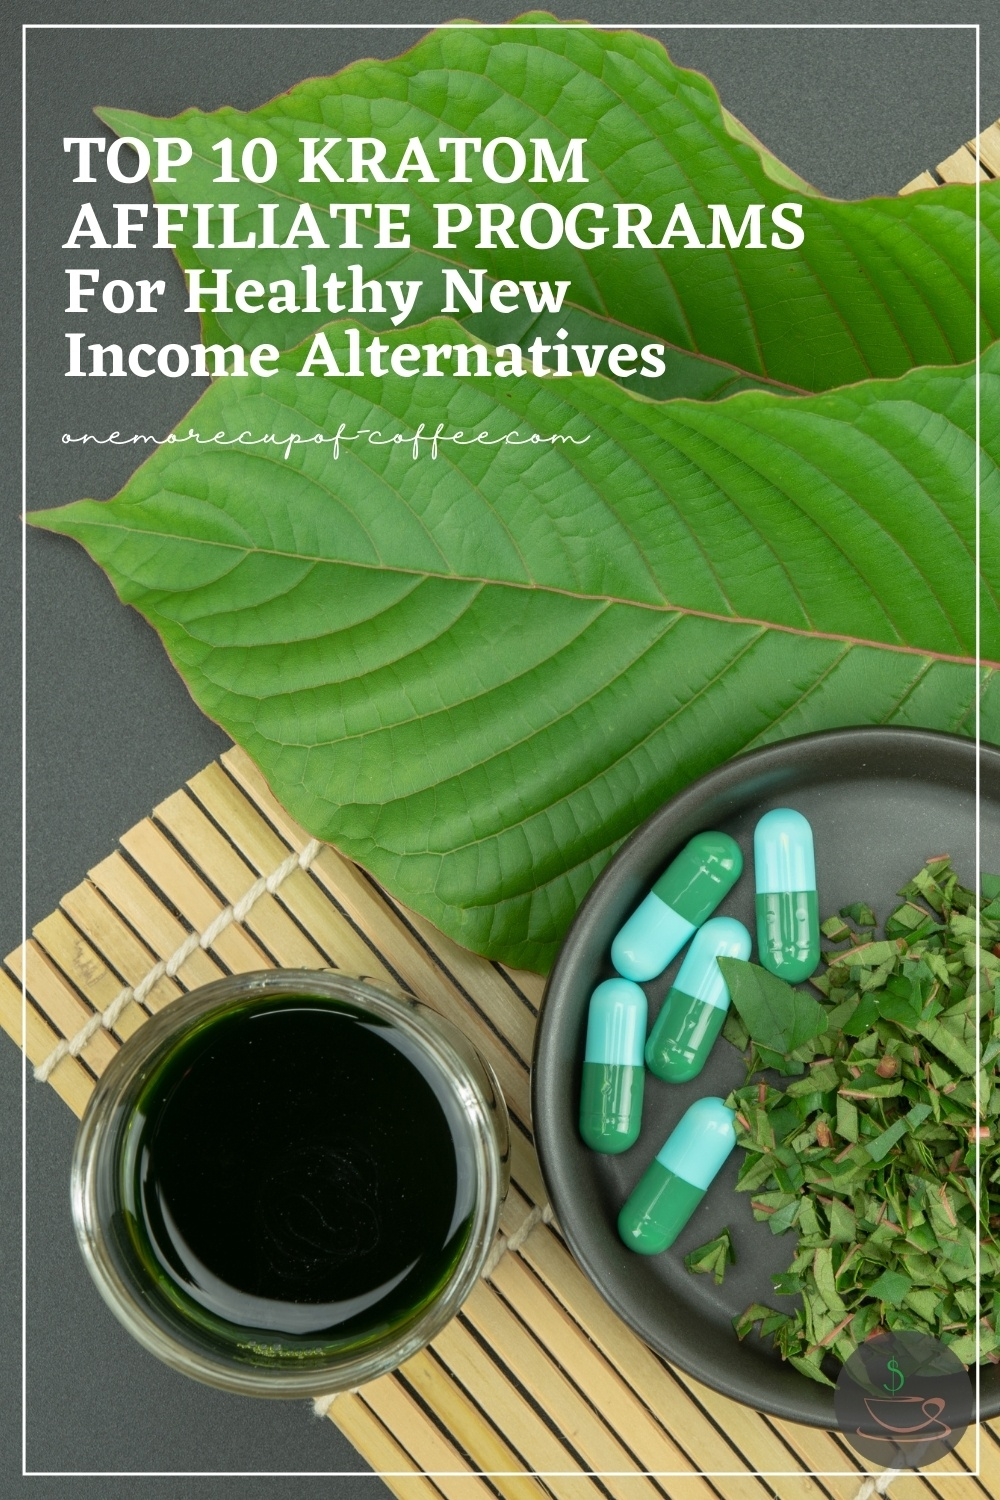 """top view image of kratom leaves, capsules, and tea; with text overlay """"Top 10 Kratom Affiliate Programs For Healthy New Income Alternatives"""""""